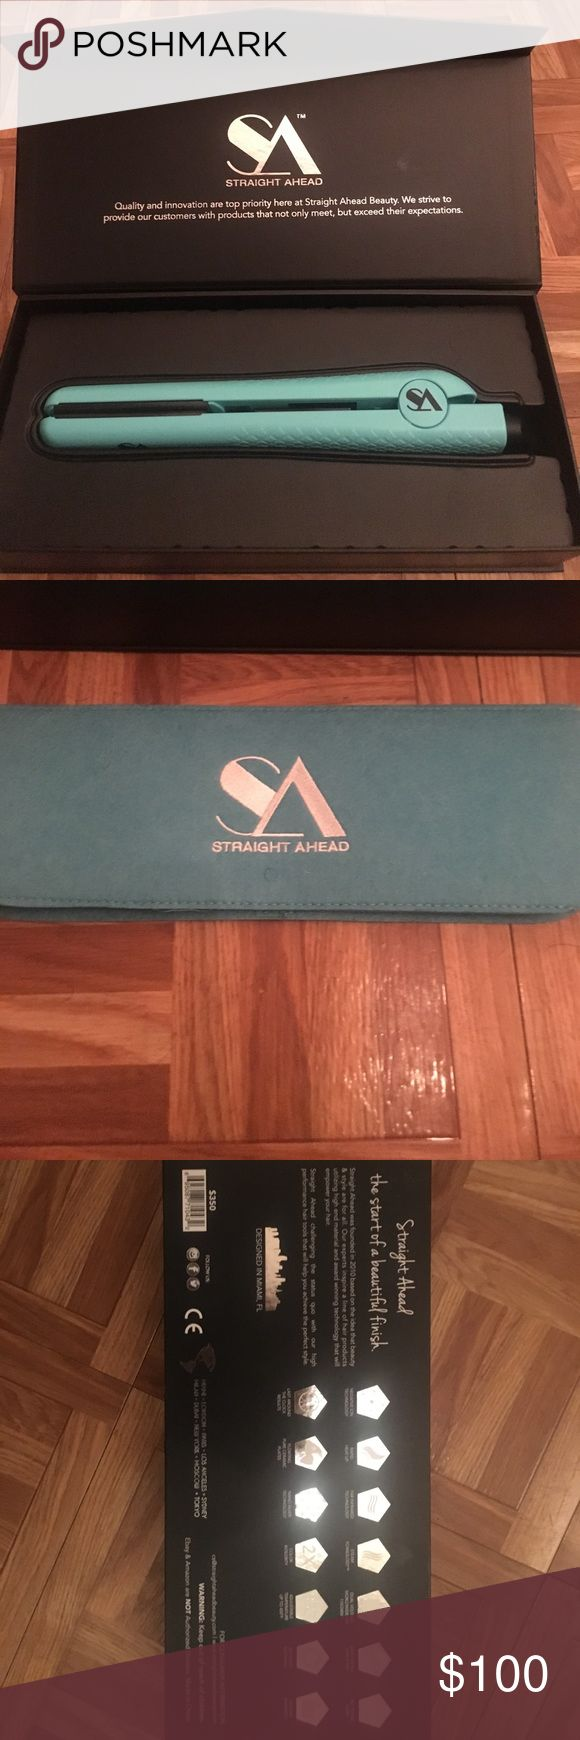 Straight ahead ceramic straightener BRAND NEW straightener!! It was a gift, but I don't need another hair straightener. Comes with lifetime warranty. Comes with heat protectant pad to save your counters. Accessories Hair Accessories